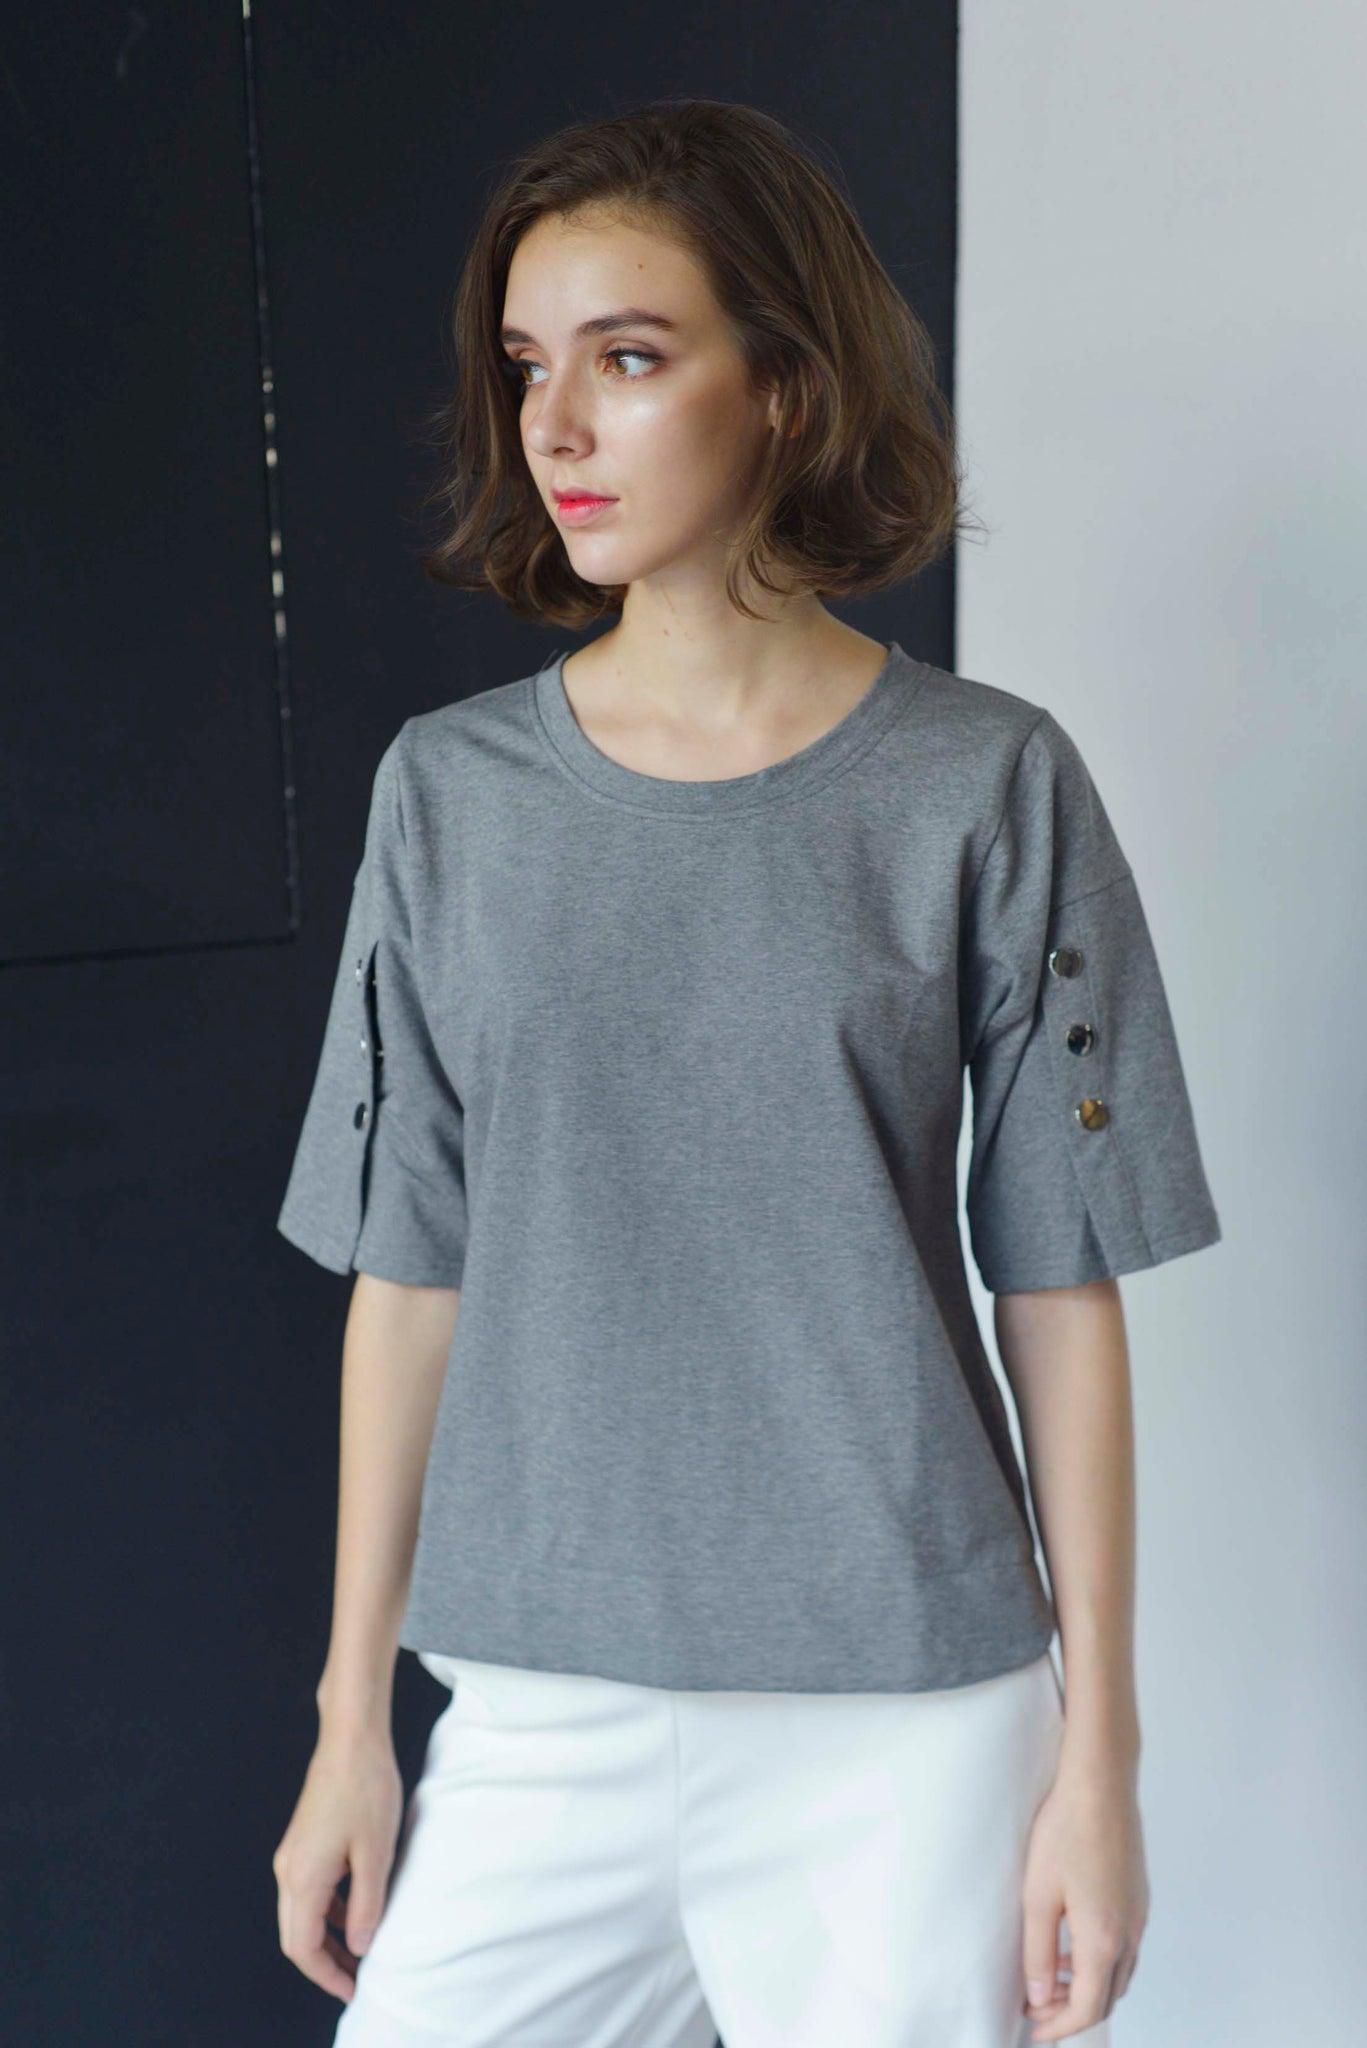 BASICS-Kaila Top in Grey